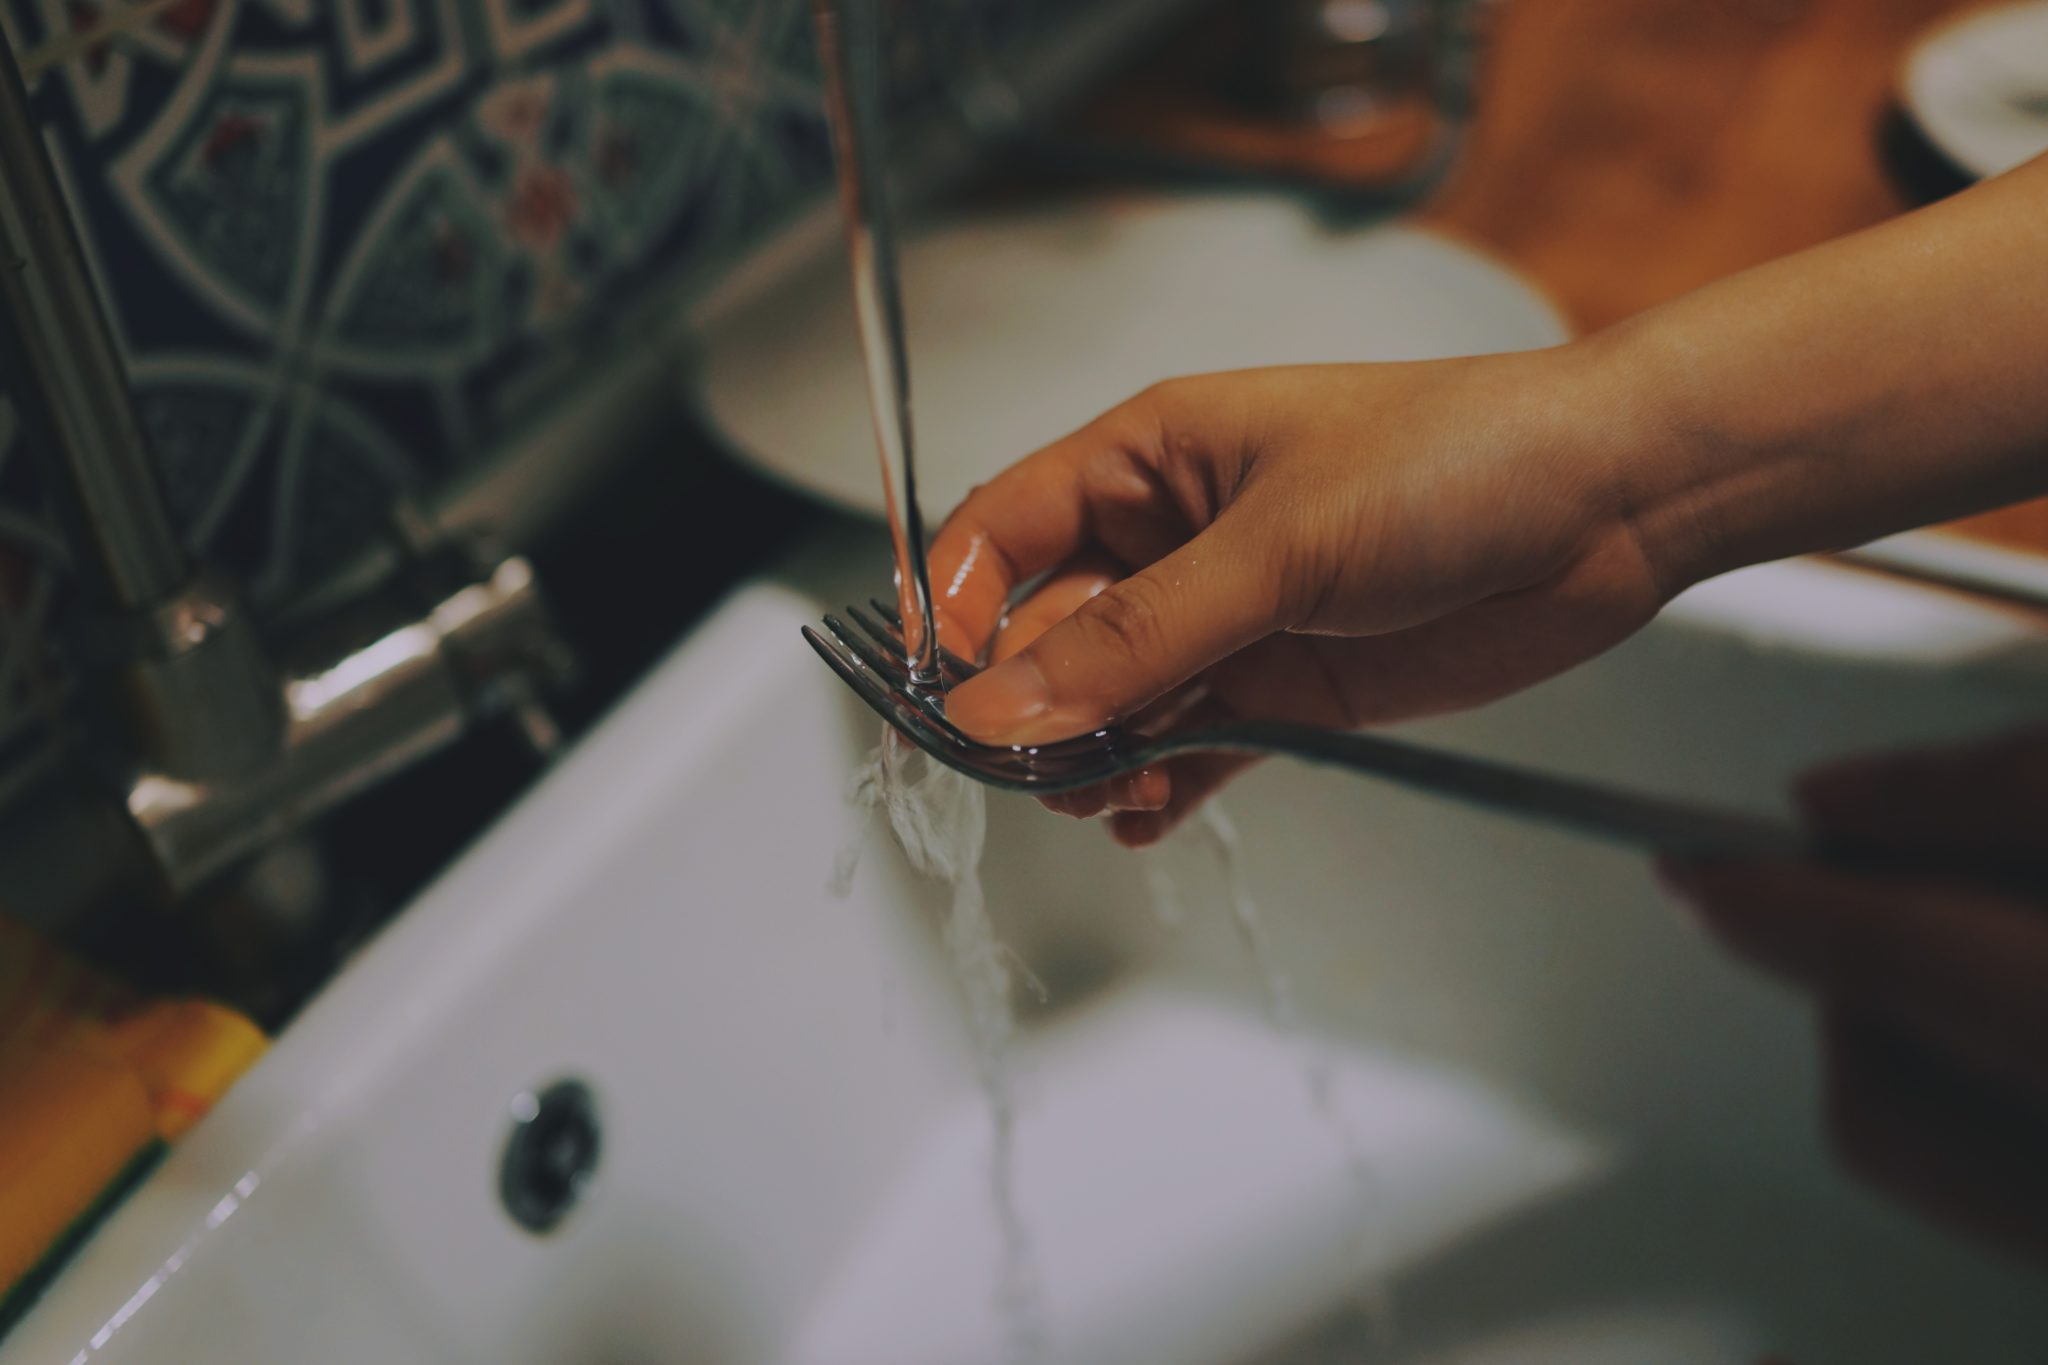 a fork being washed in running water